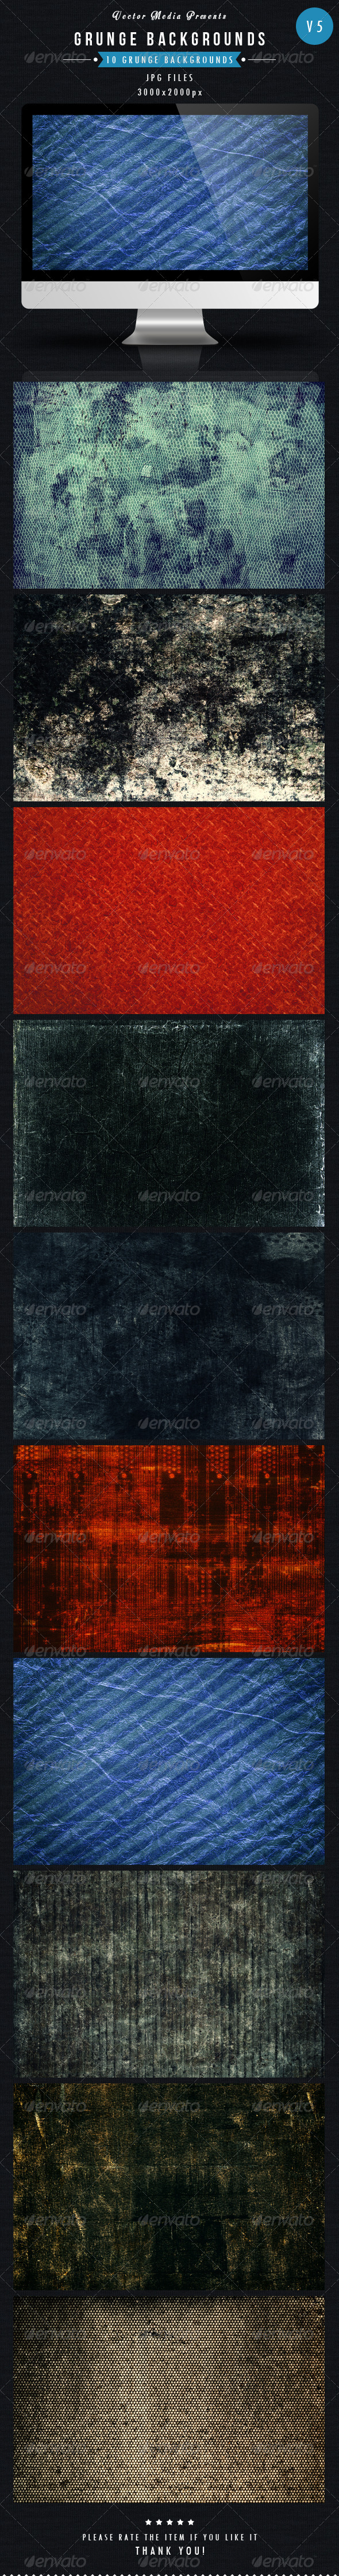 GraphicRiver Grunge Backgrounds Vol 5 5587373